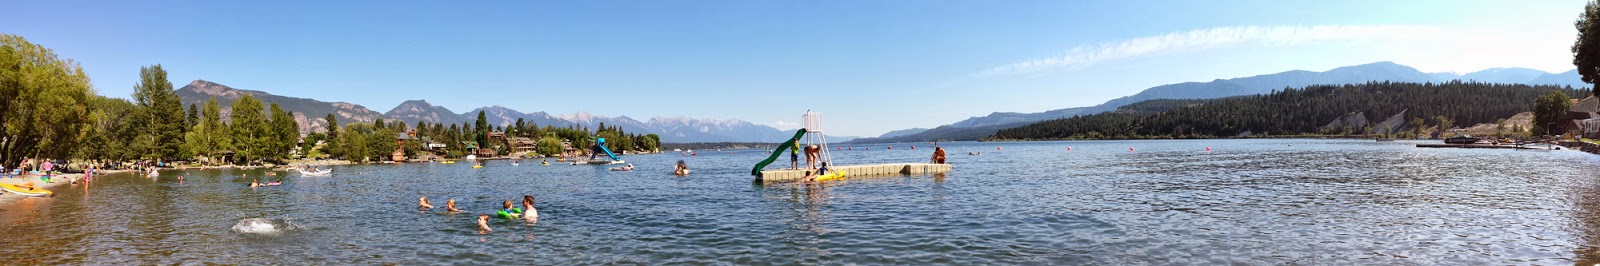 Panorama of Windermere Lake in Invermere, BC